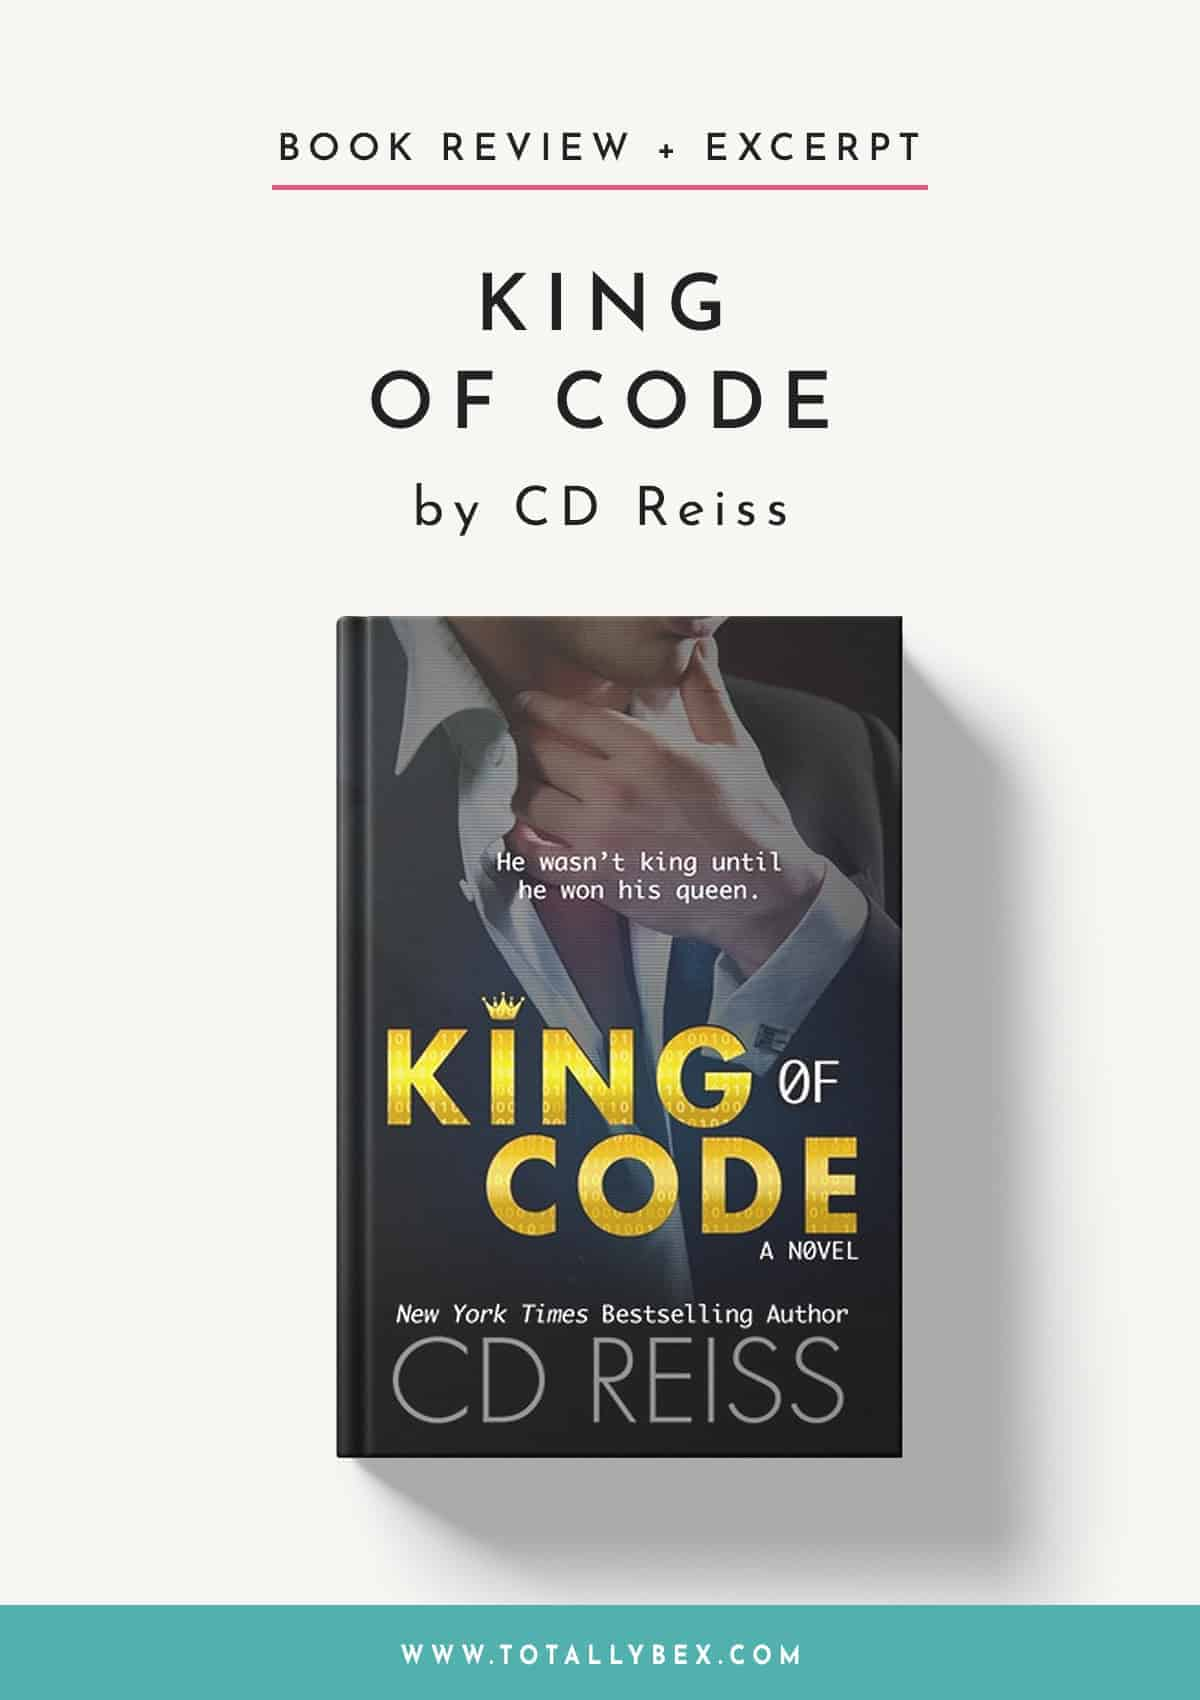 King of Code by CD Reiss-Book Review+Excerpt